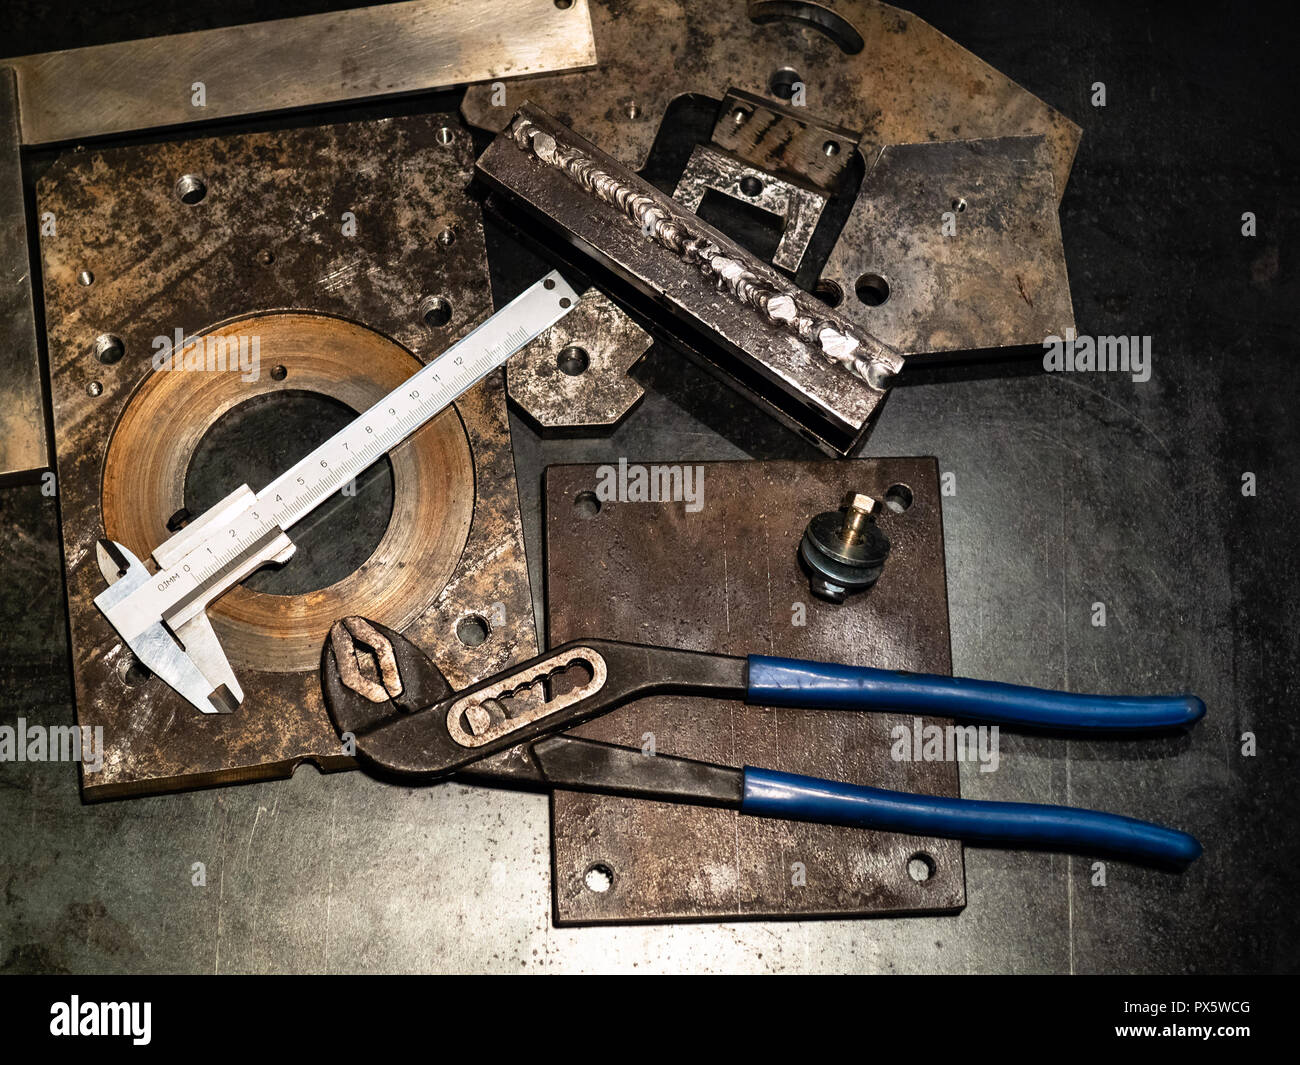 Metalworking still life - top view of callipers and adjustable pliers on metal workbench in turnery workshop in warm yellow light - Stock Image